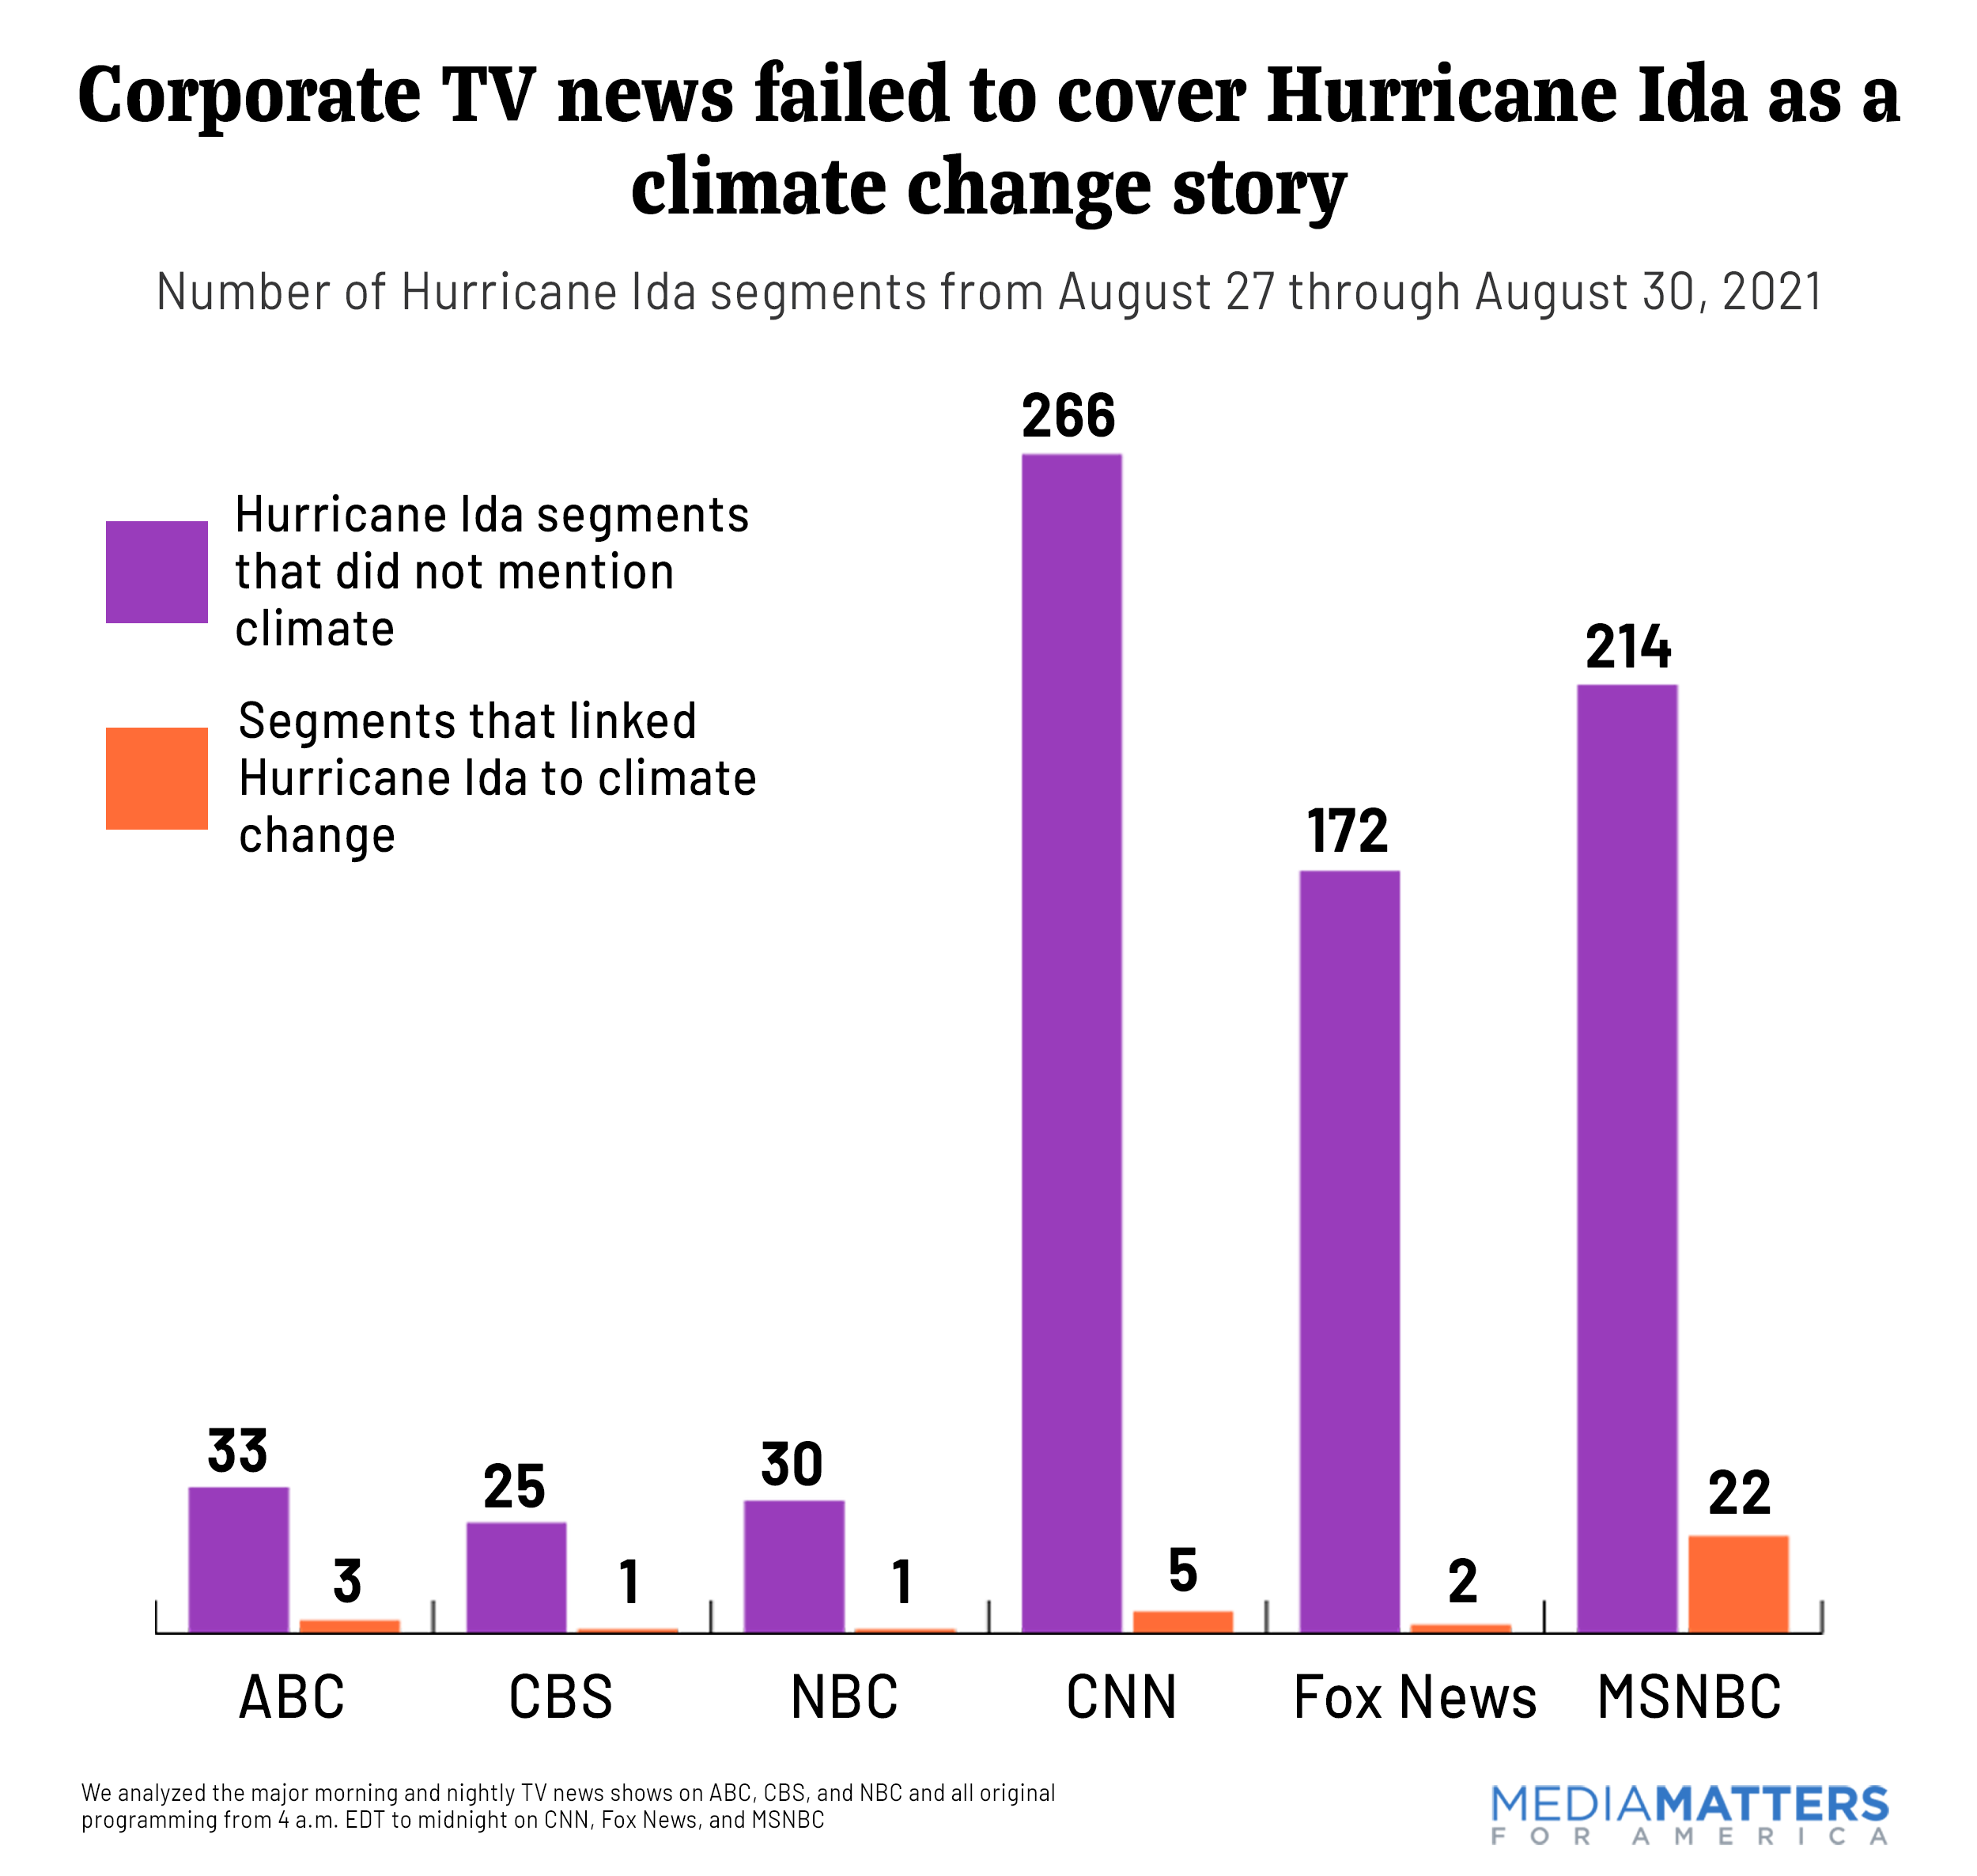 Climate change mentions in Hurricane Ida Coverage by network